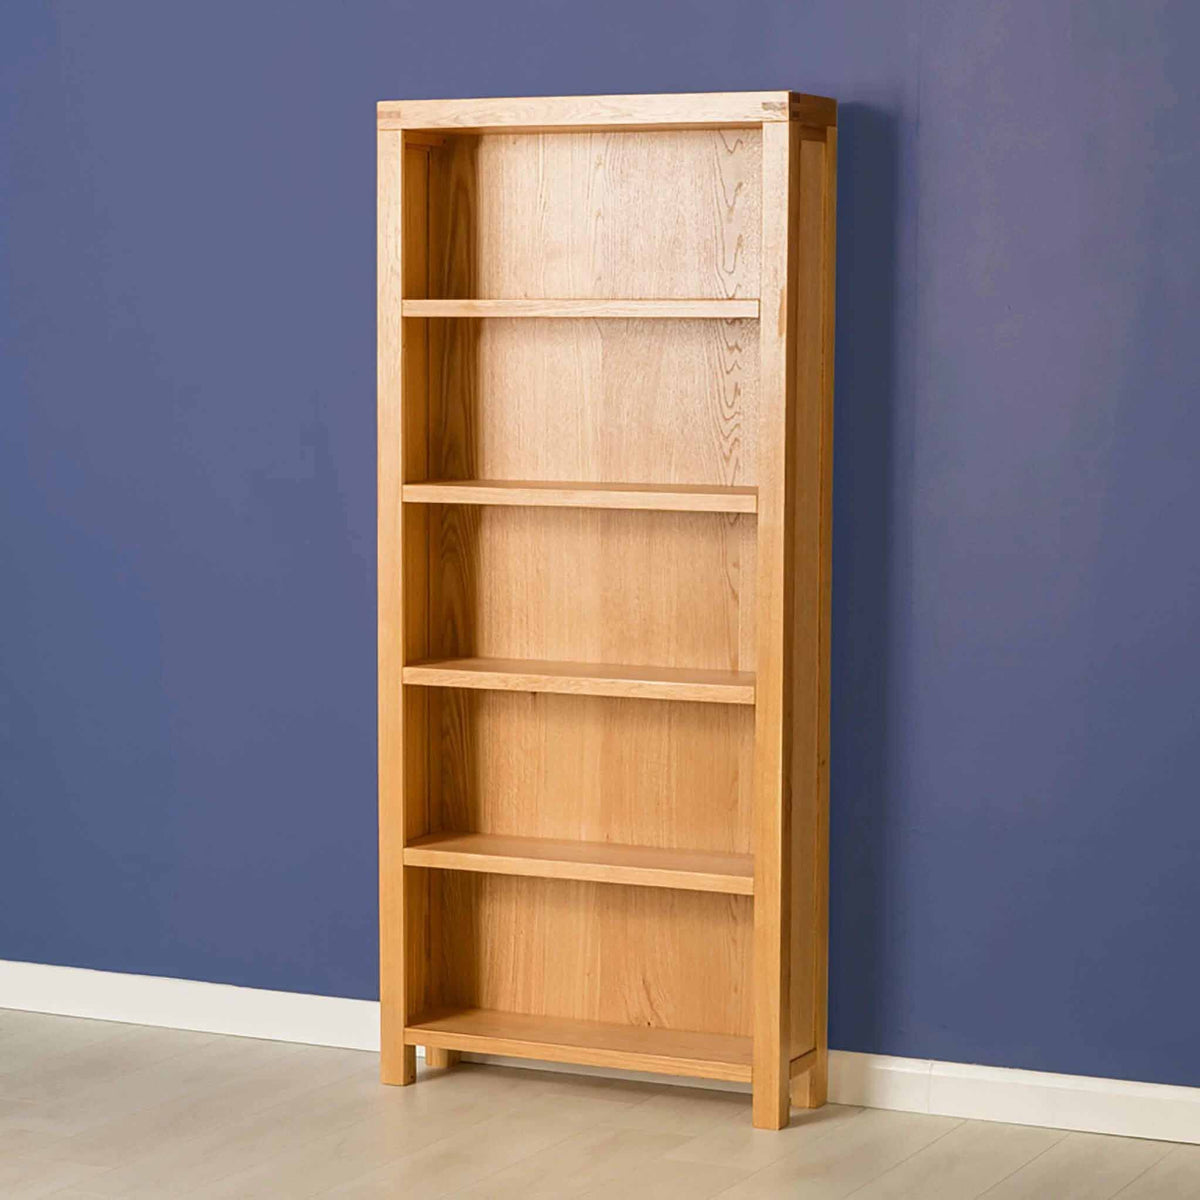 The Abbey Light Oak Large Wooden Bookcase - Lifestyle with empty bookcase